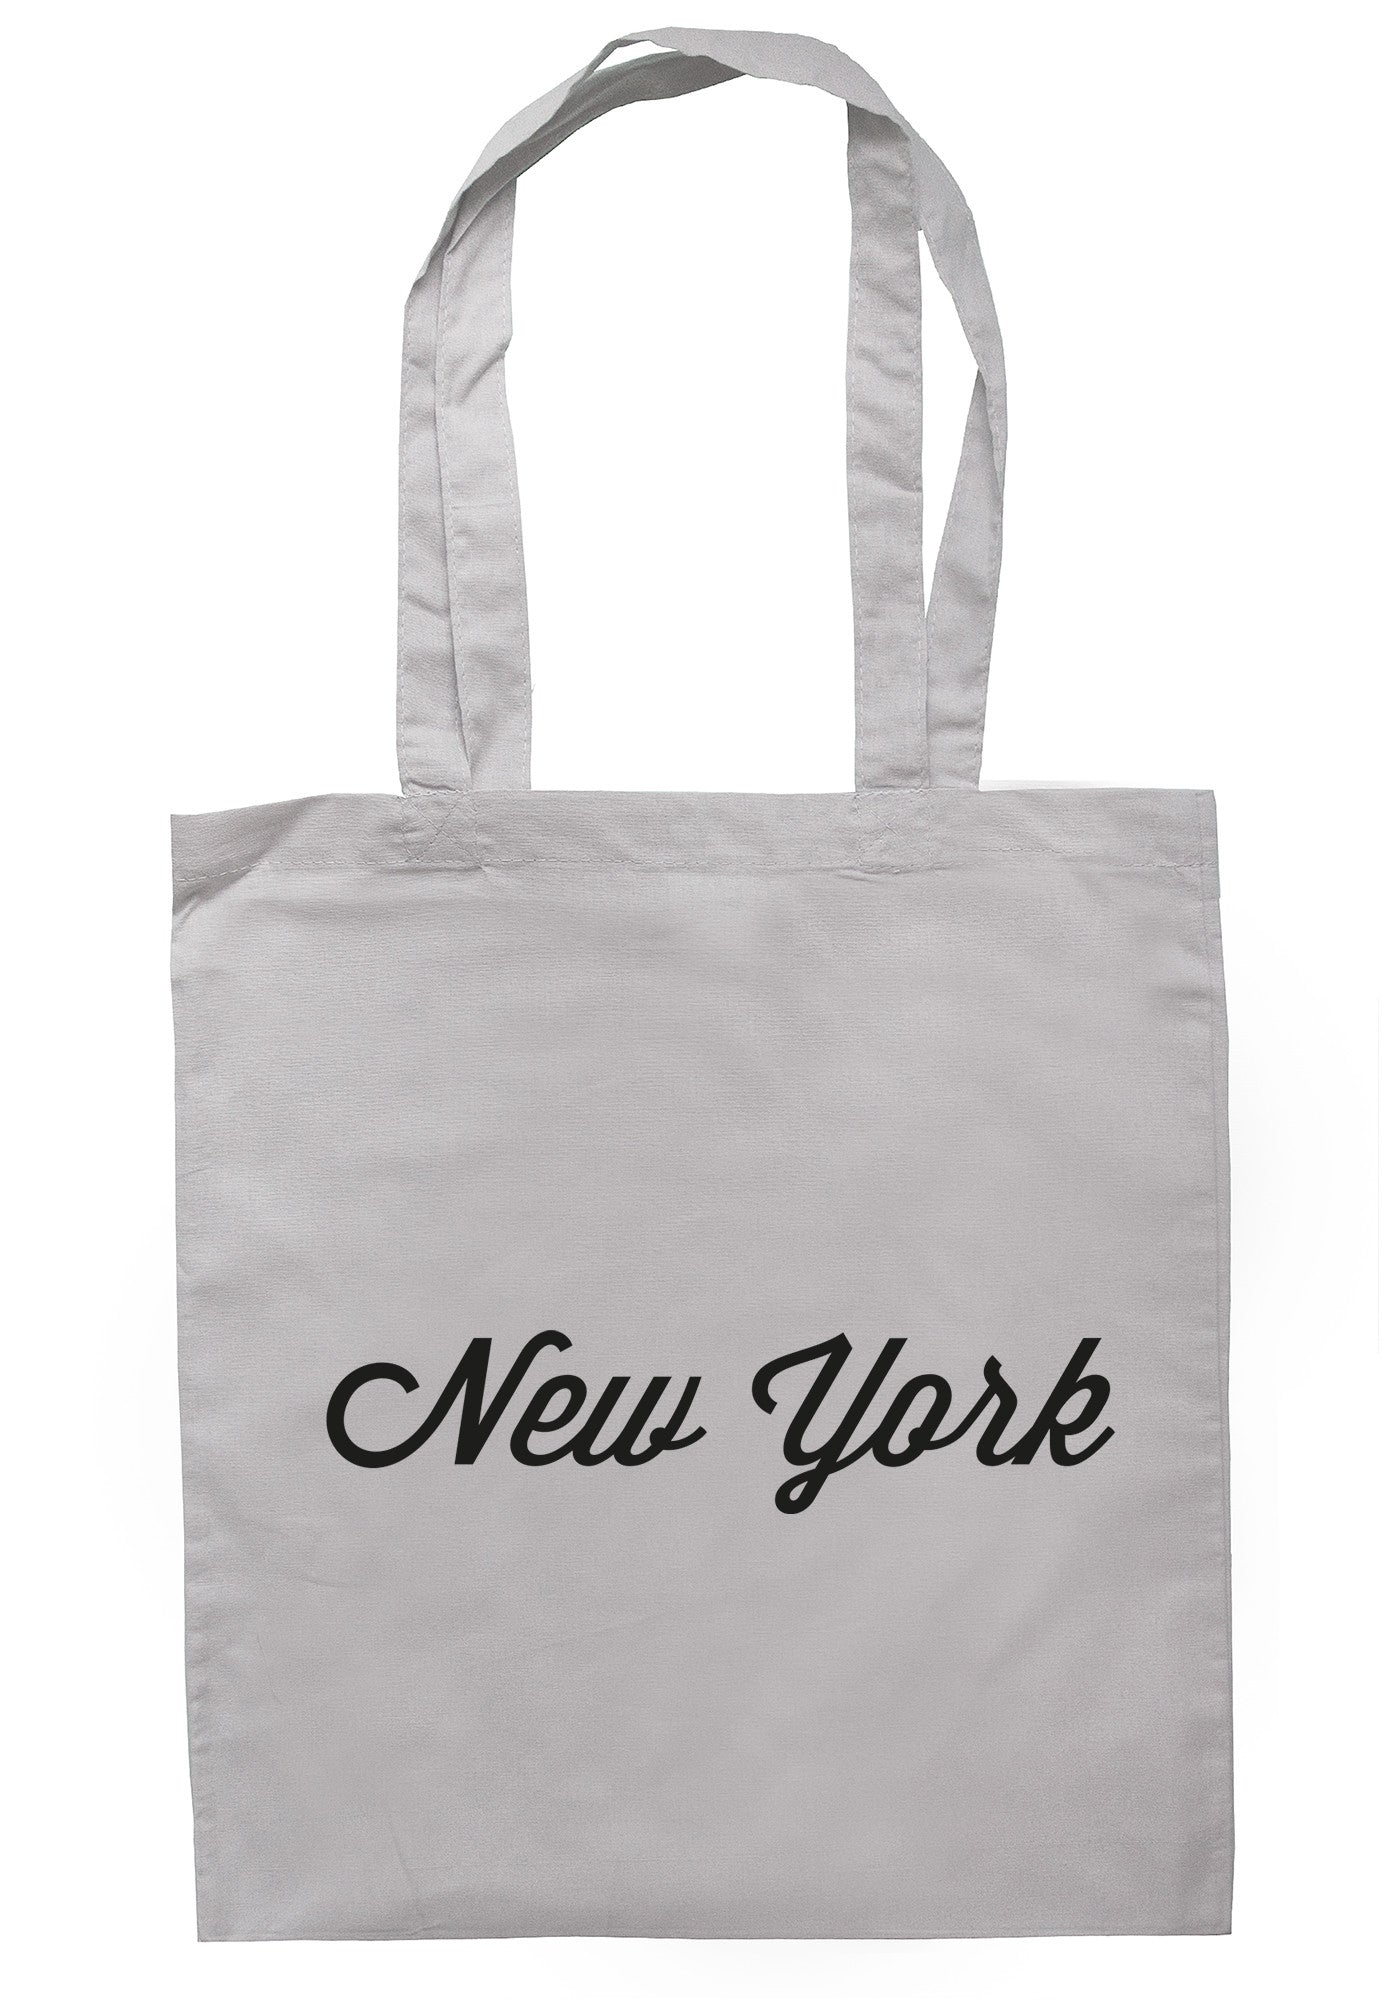 New York Tote Bag TB0638 - Illustrated Identity Ltd.